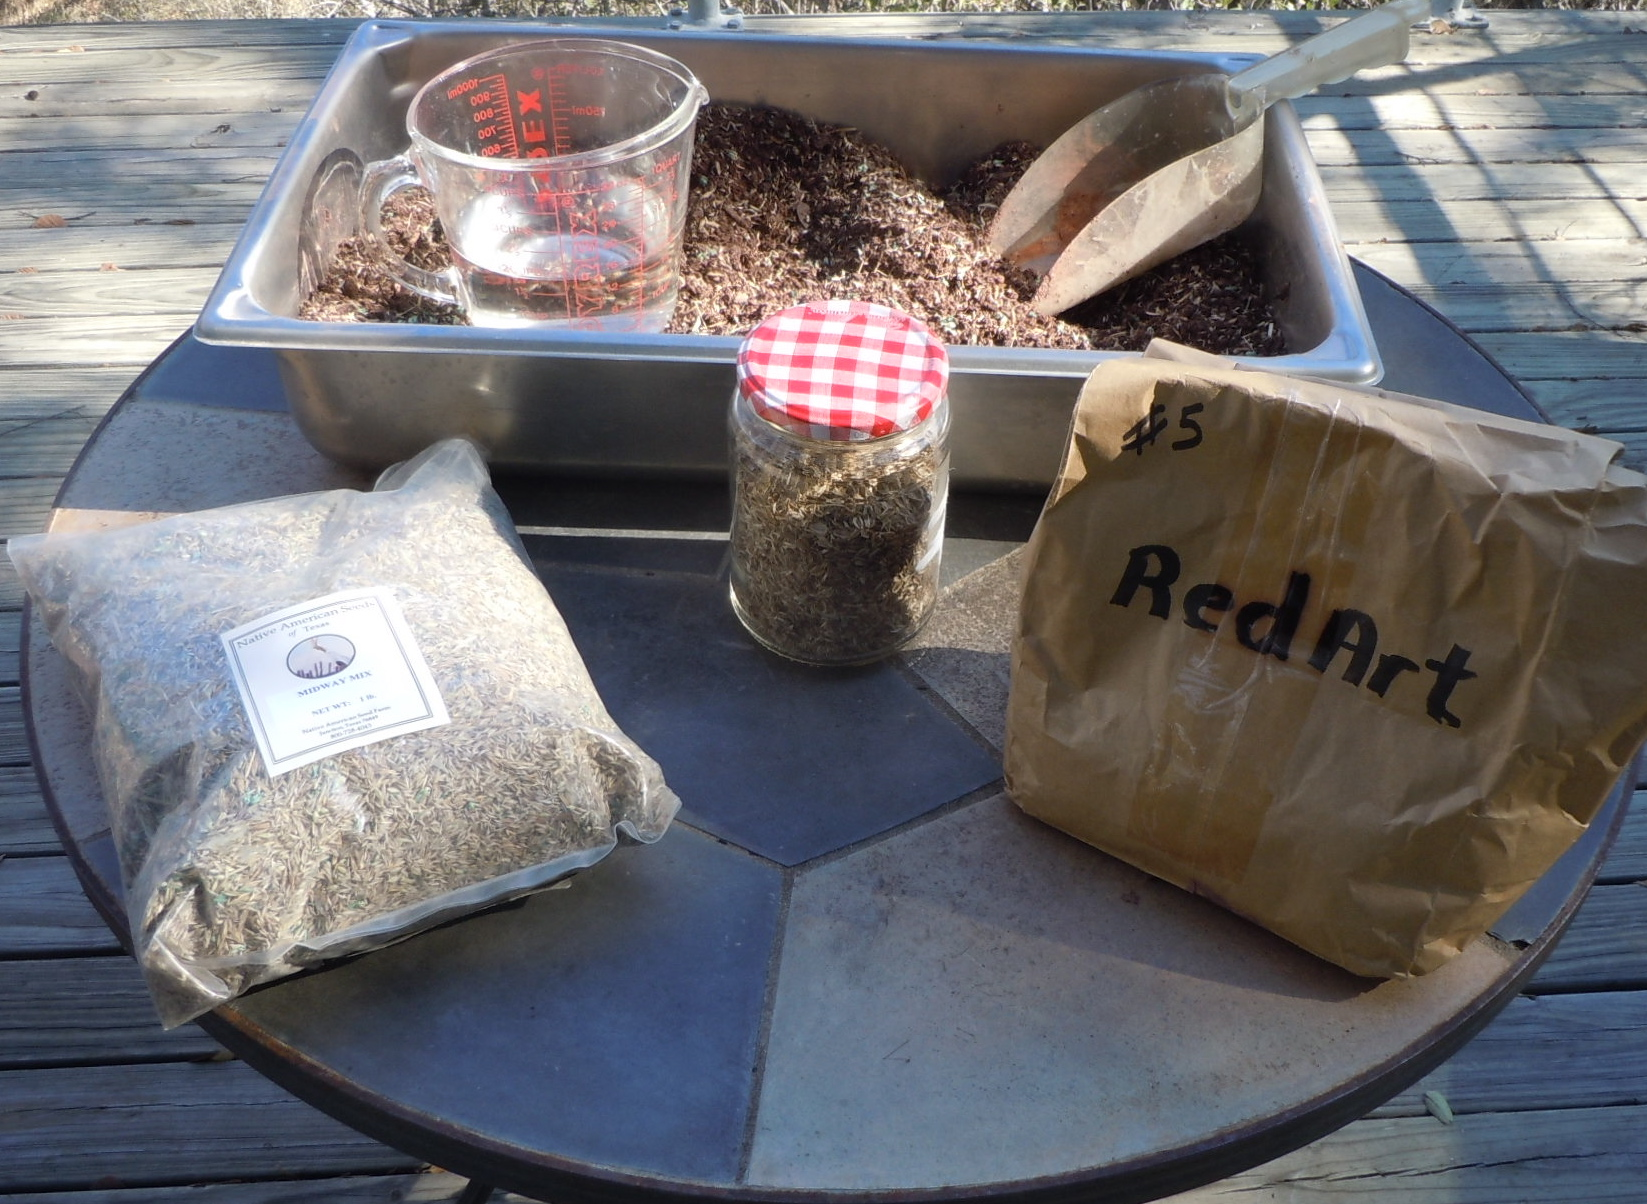 What do you need to make seedballs? Seeds, soil, clay and water